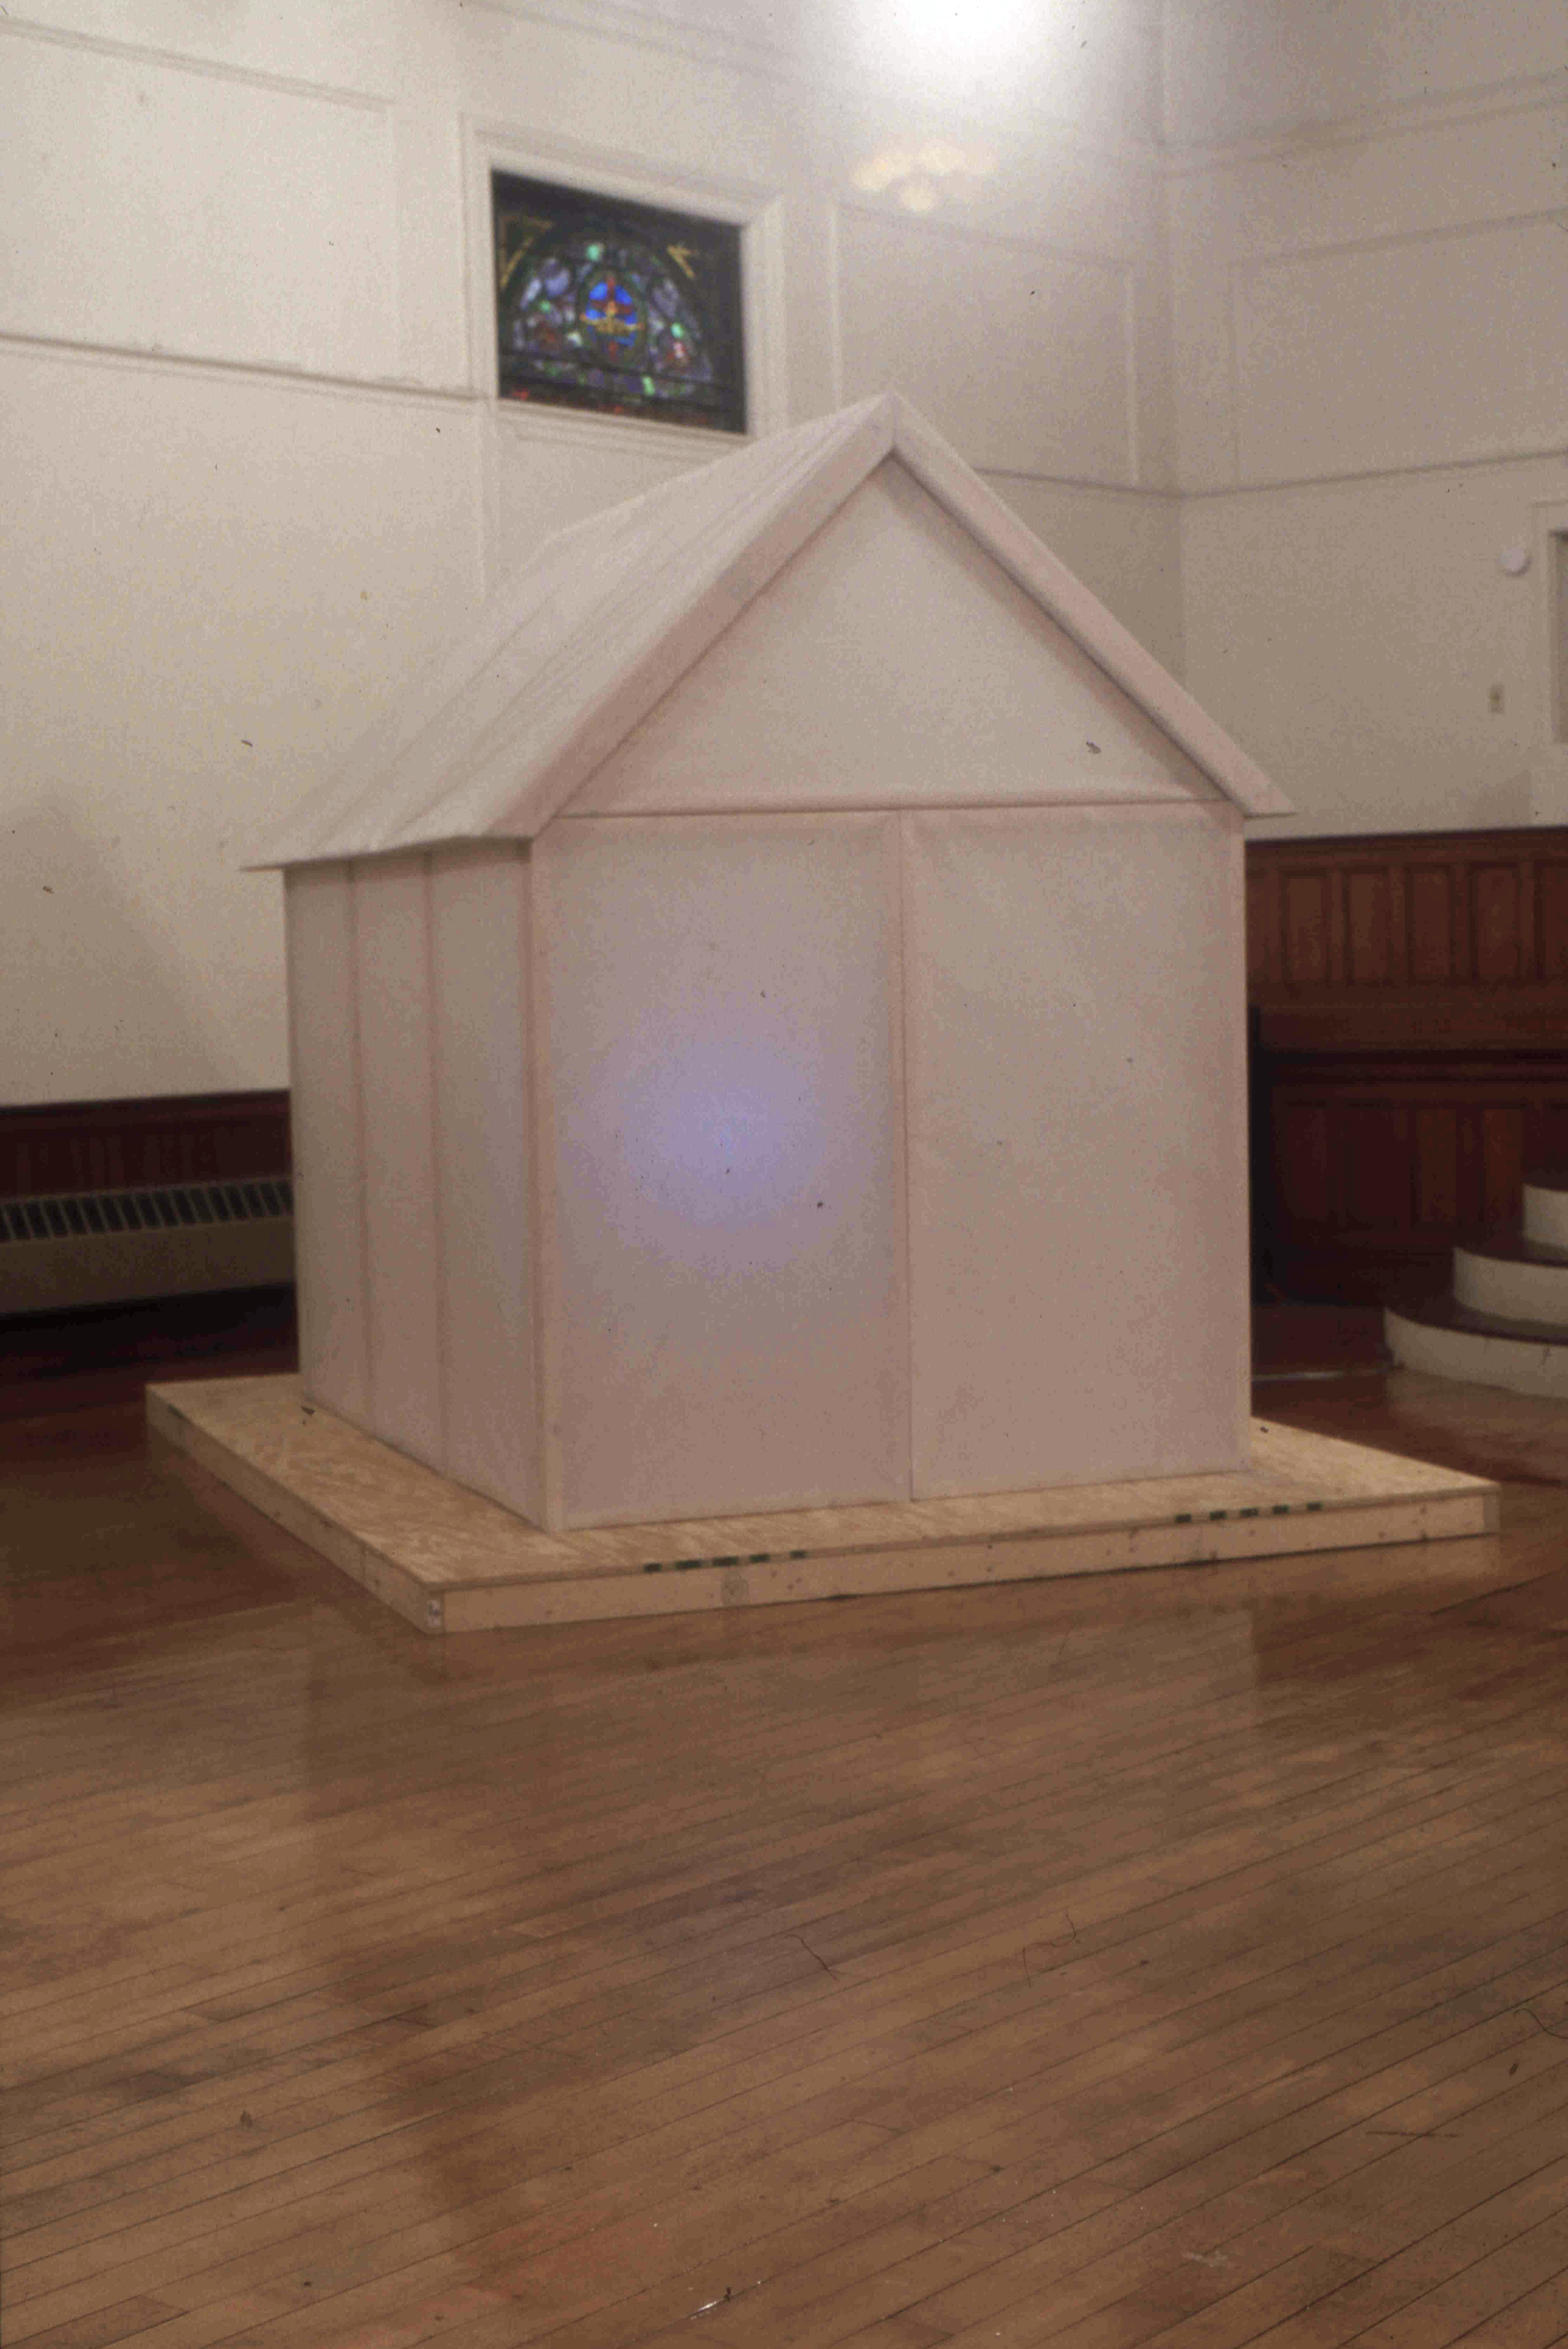 TV House, 2003, installation,wood and paper with TV off, 2003,8' L x 6' W x 10' H